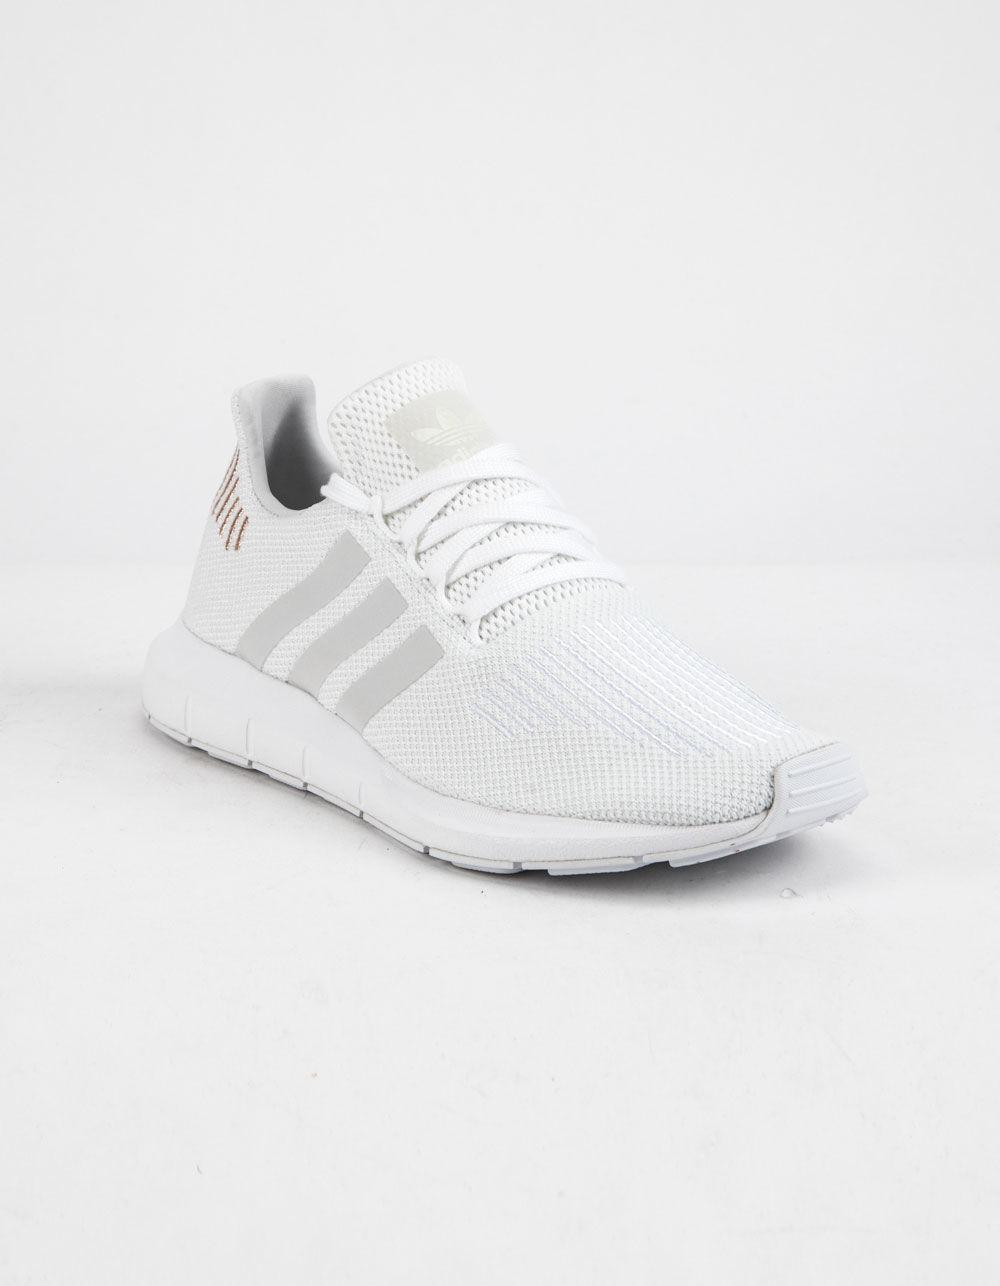 Lyst - adidas Swift Run Cloud White   Crystal White Womens Shoes in White 6228332b9